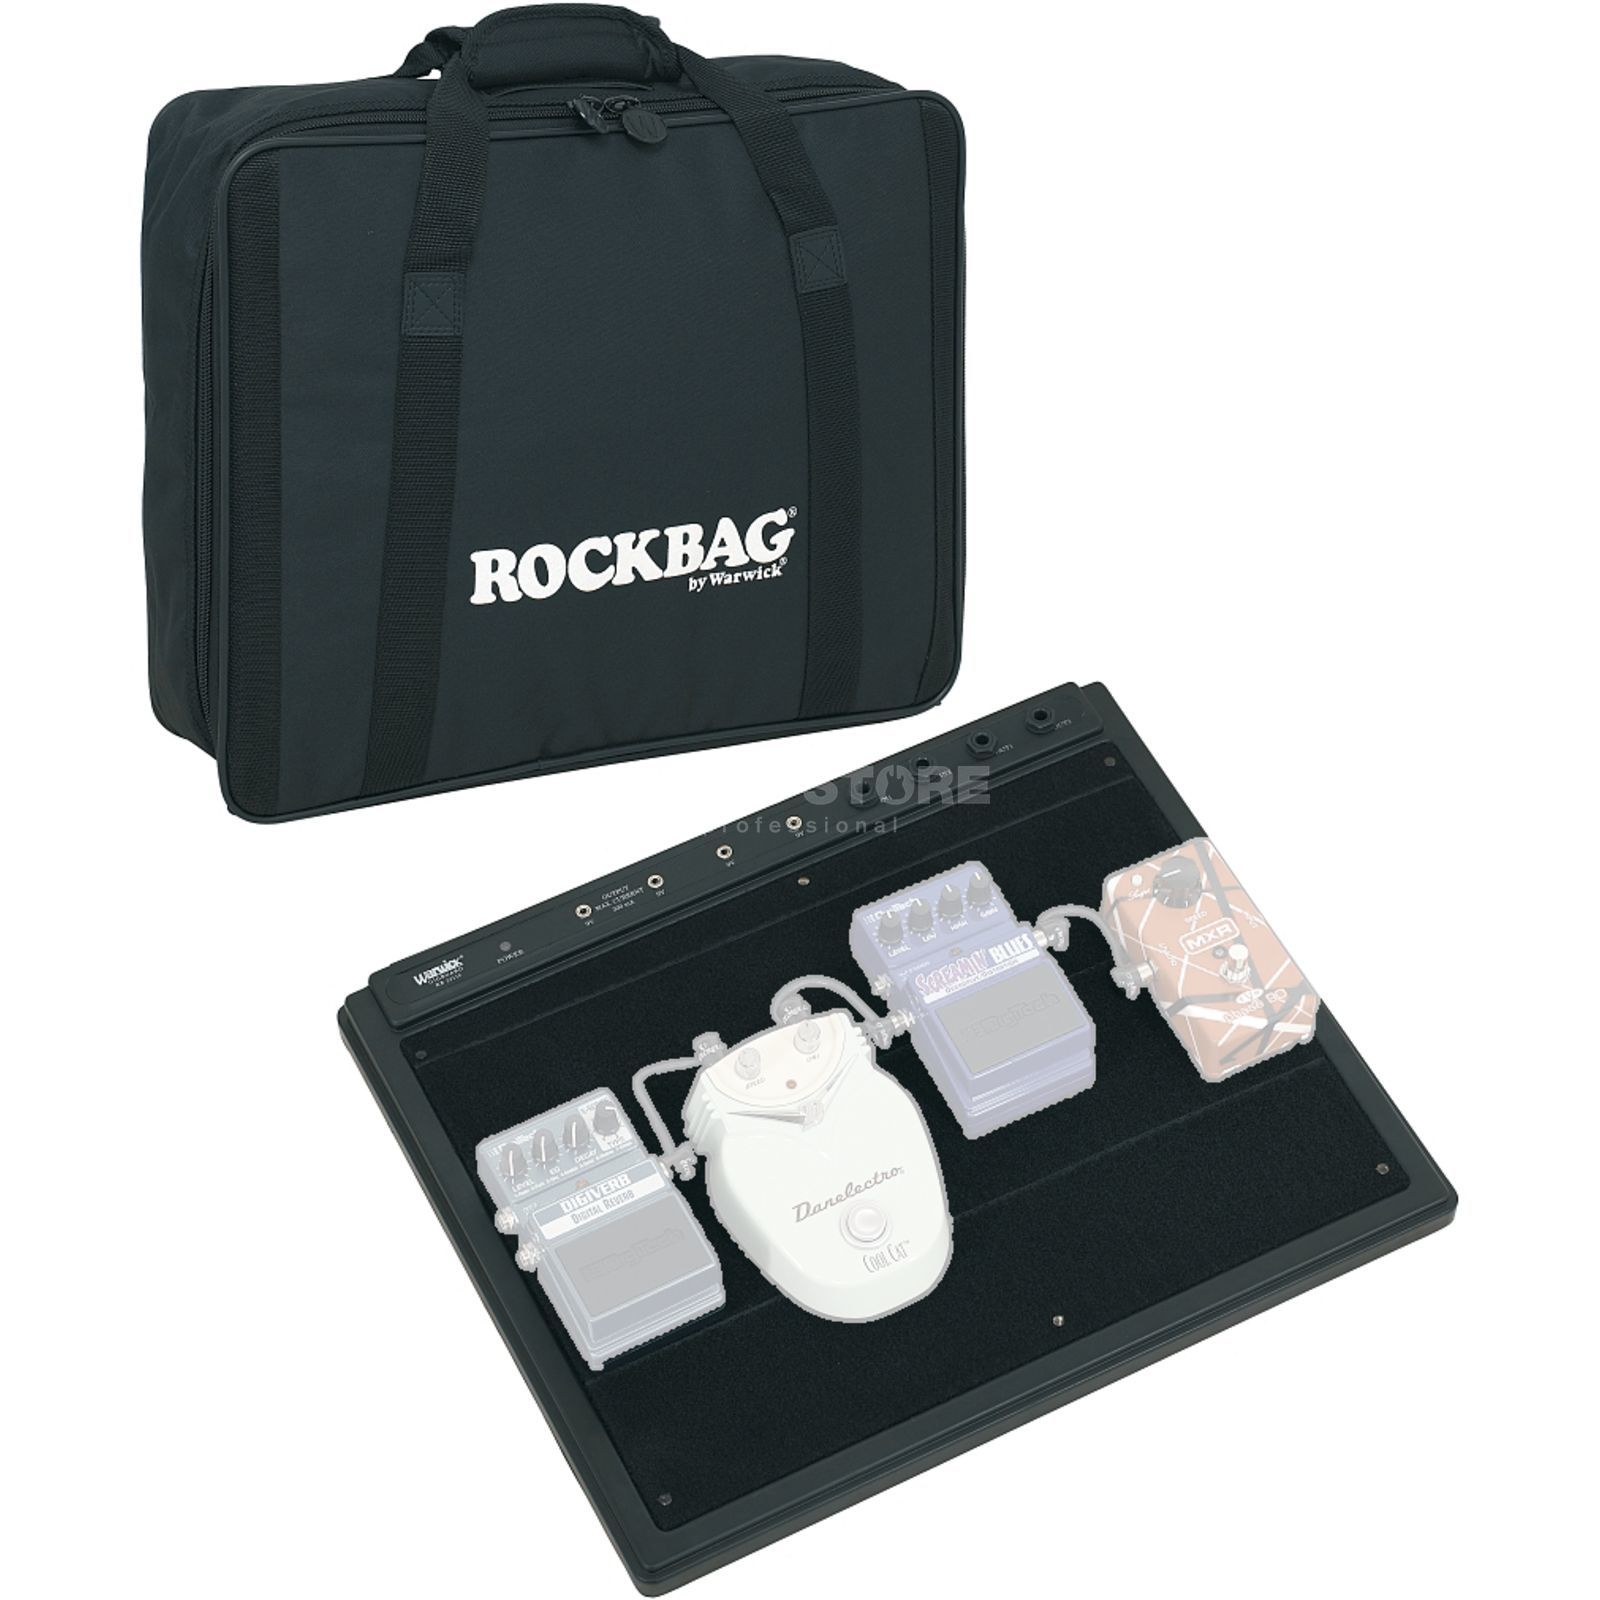 Rockbag Gigboard Small, incl. Bag for 4-5 Floor Effects, Pow.Sup Produktbillede